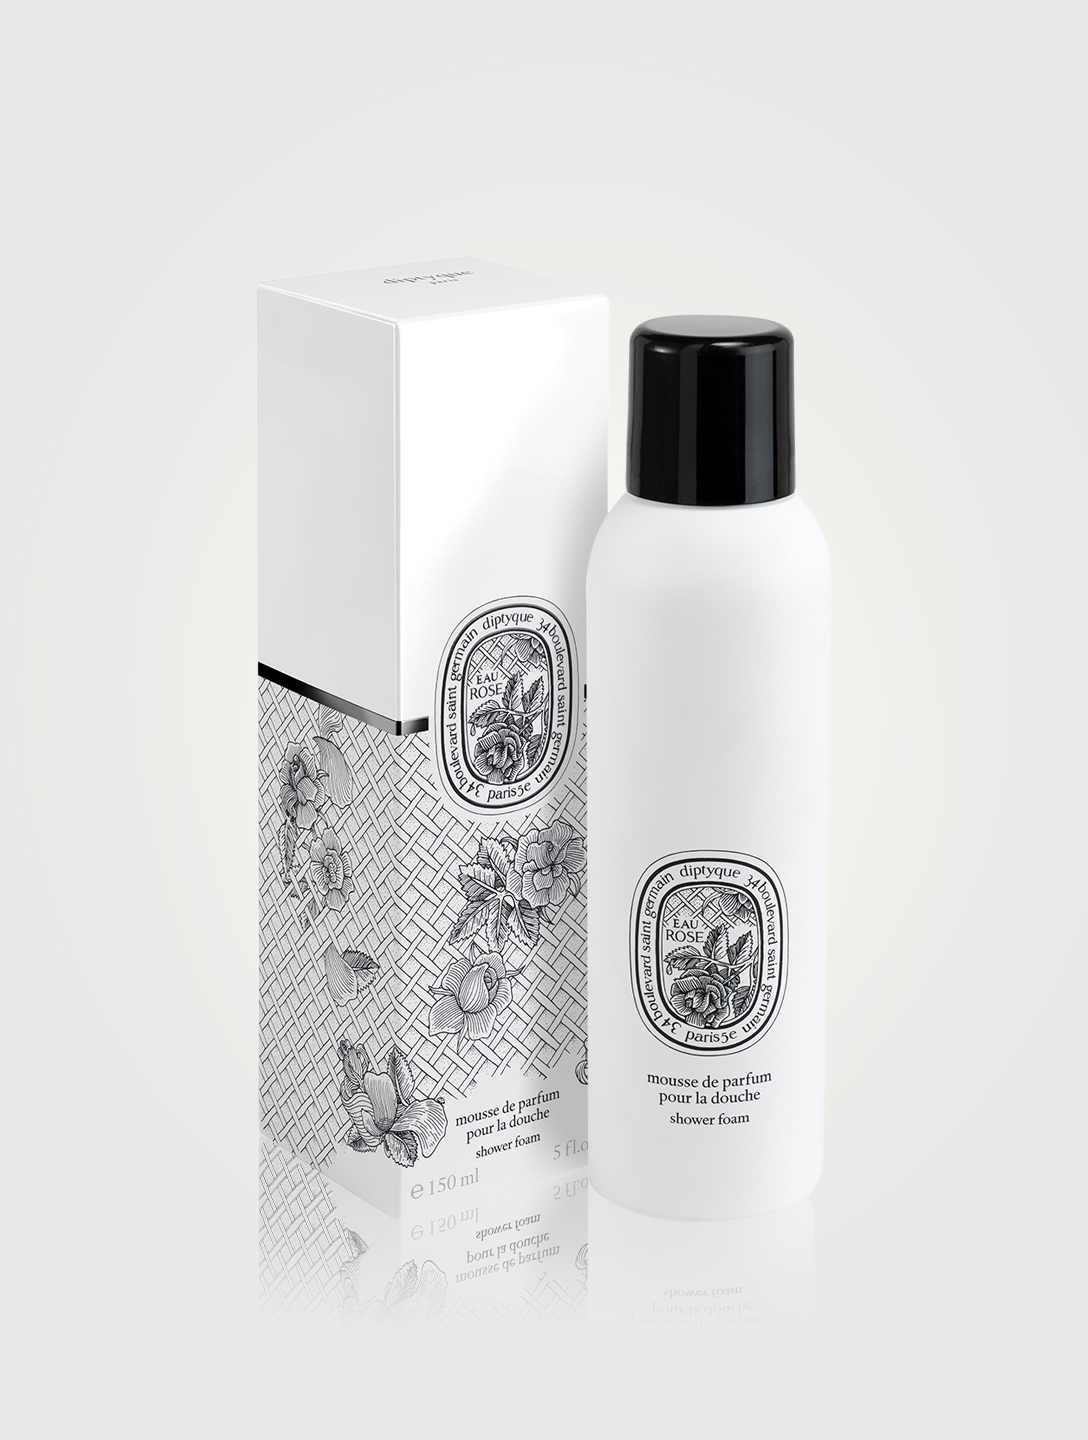 DIPTYQUE Eau Rose Shower Foam Beauty